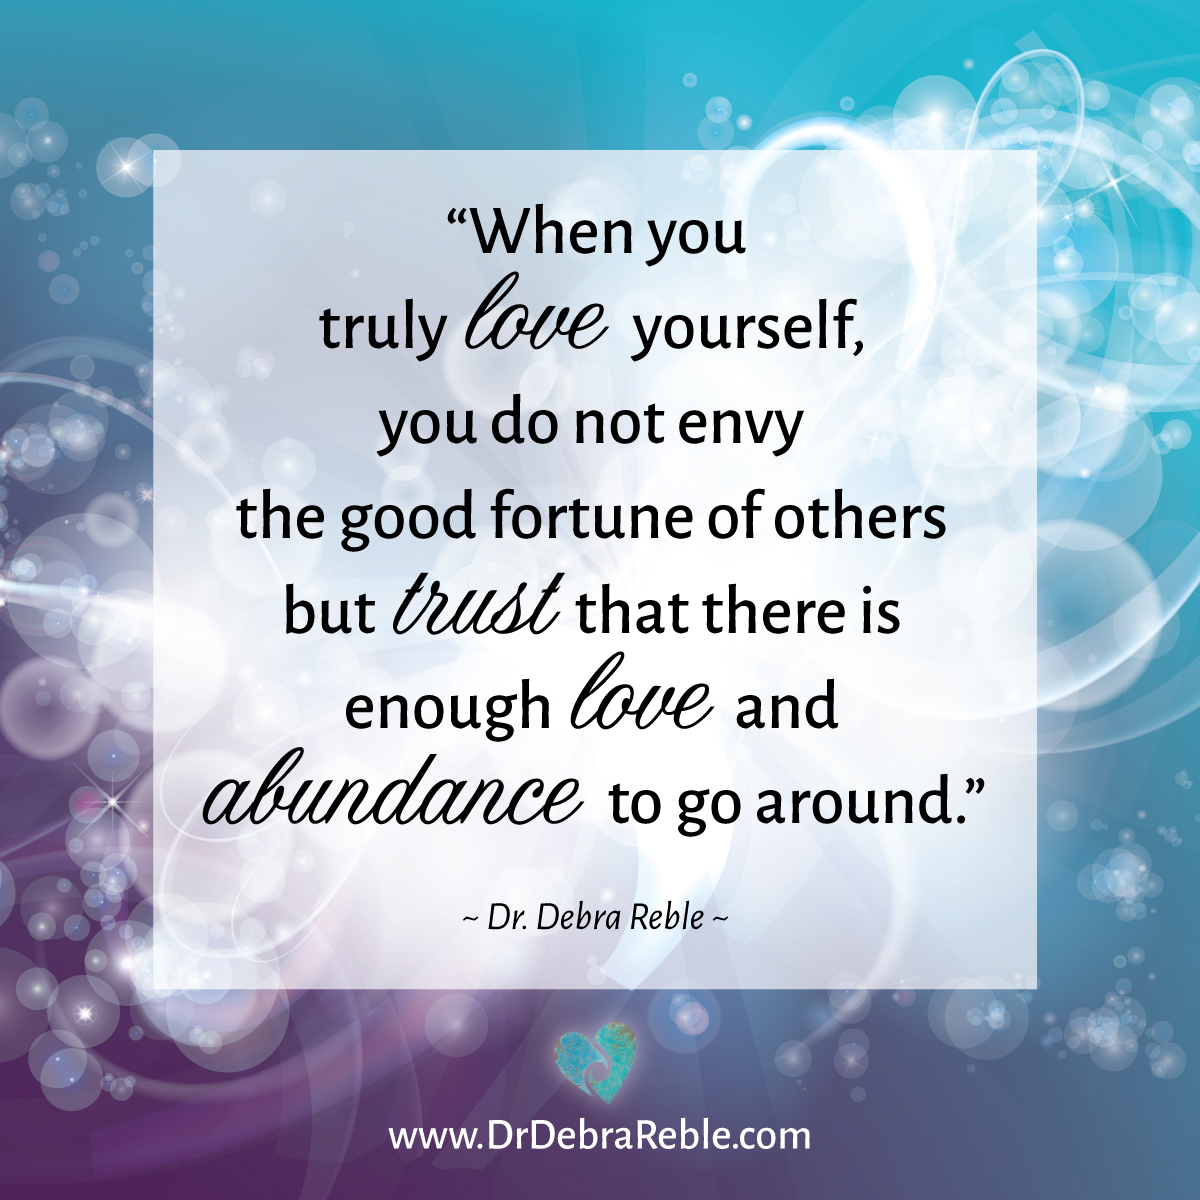 Quotes About Loving Yourself Quote Wielding Our Power As Beings Of Love Helps Us Reach Our